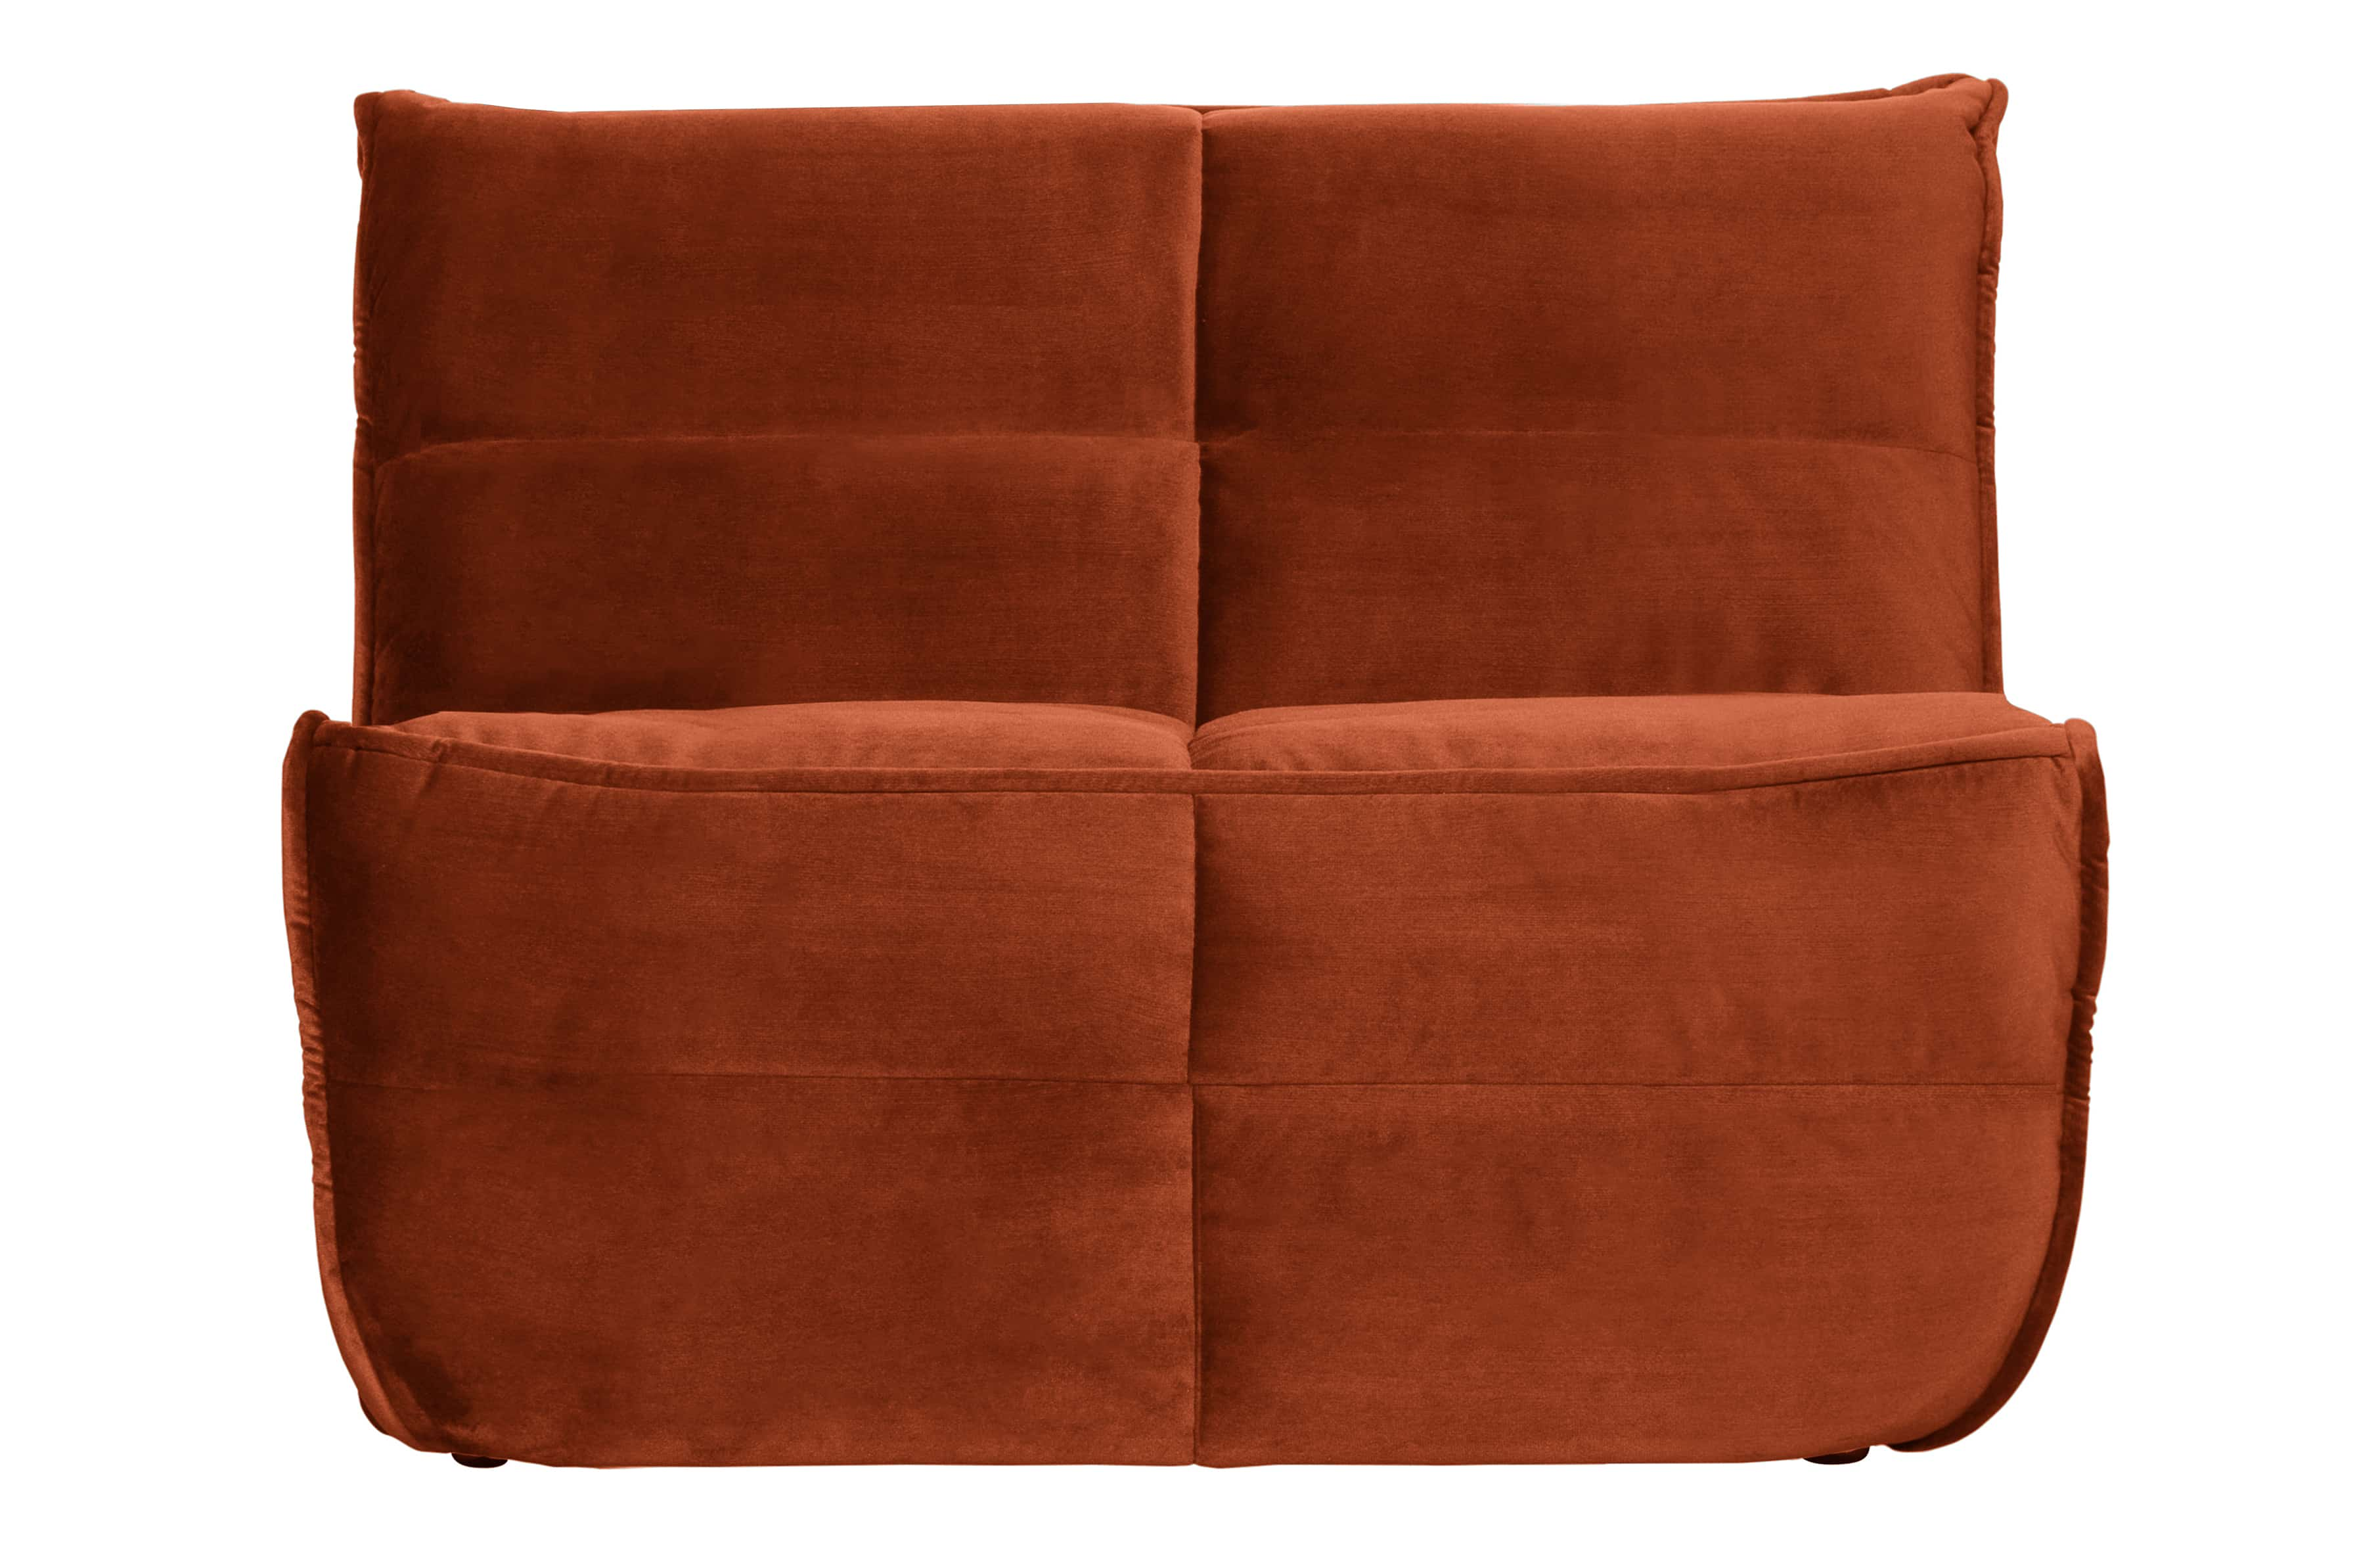 Cluster 1-seater Sofa Glanz Samt Rost